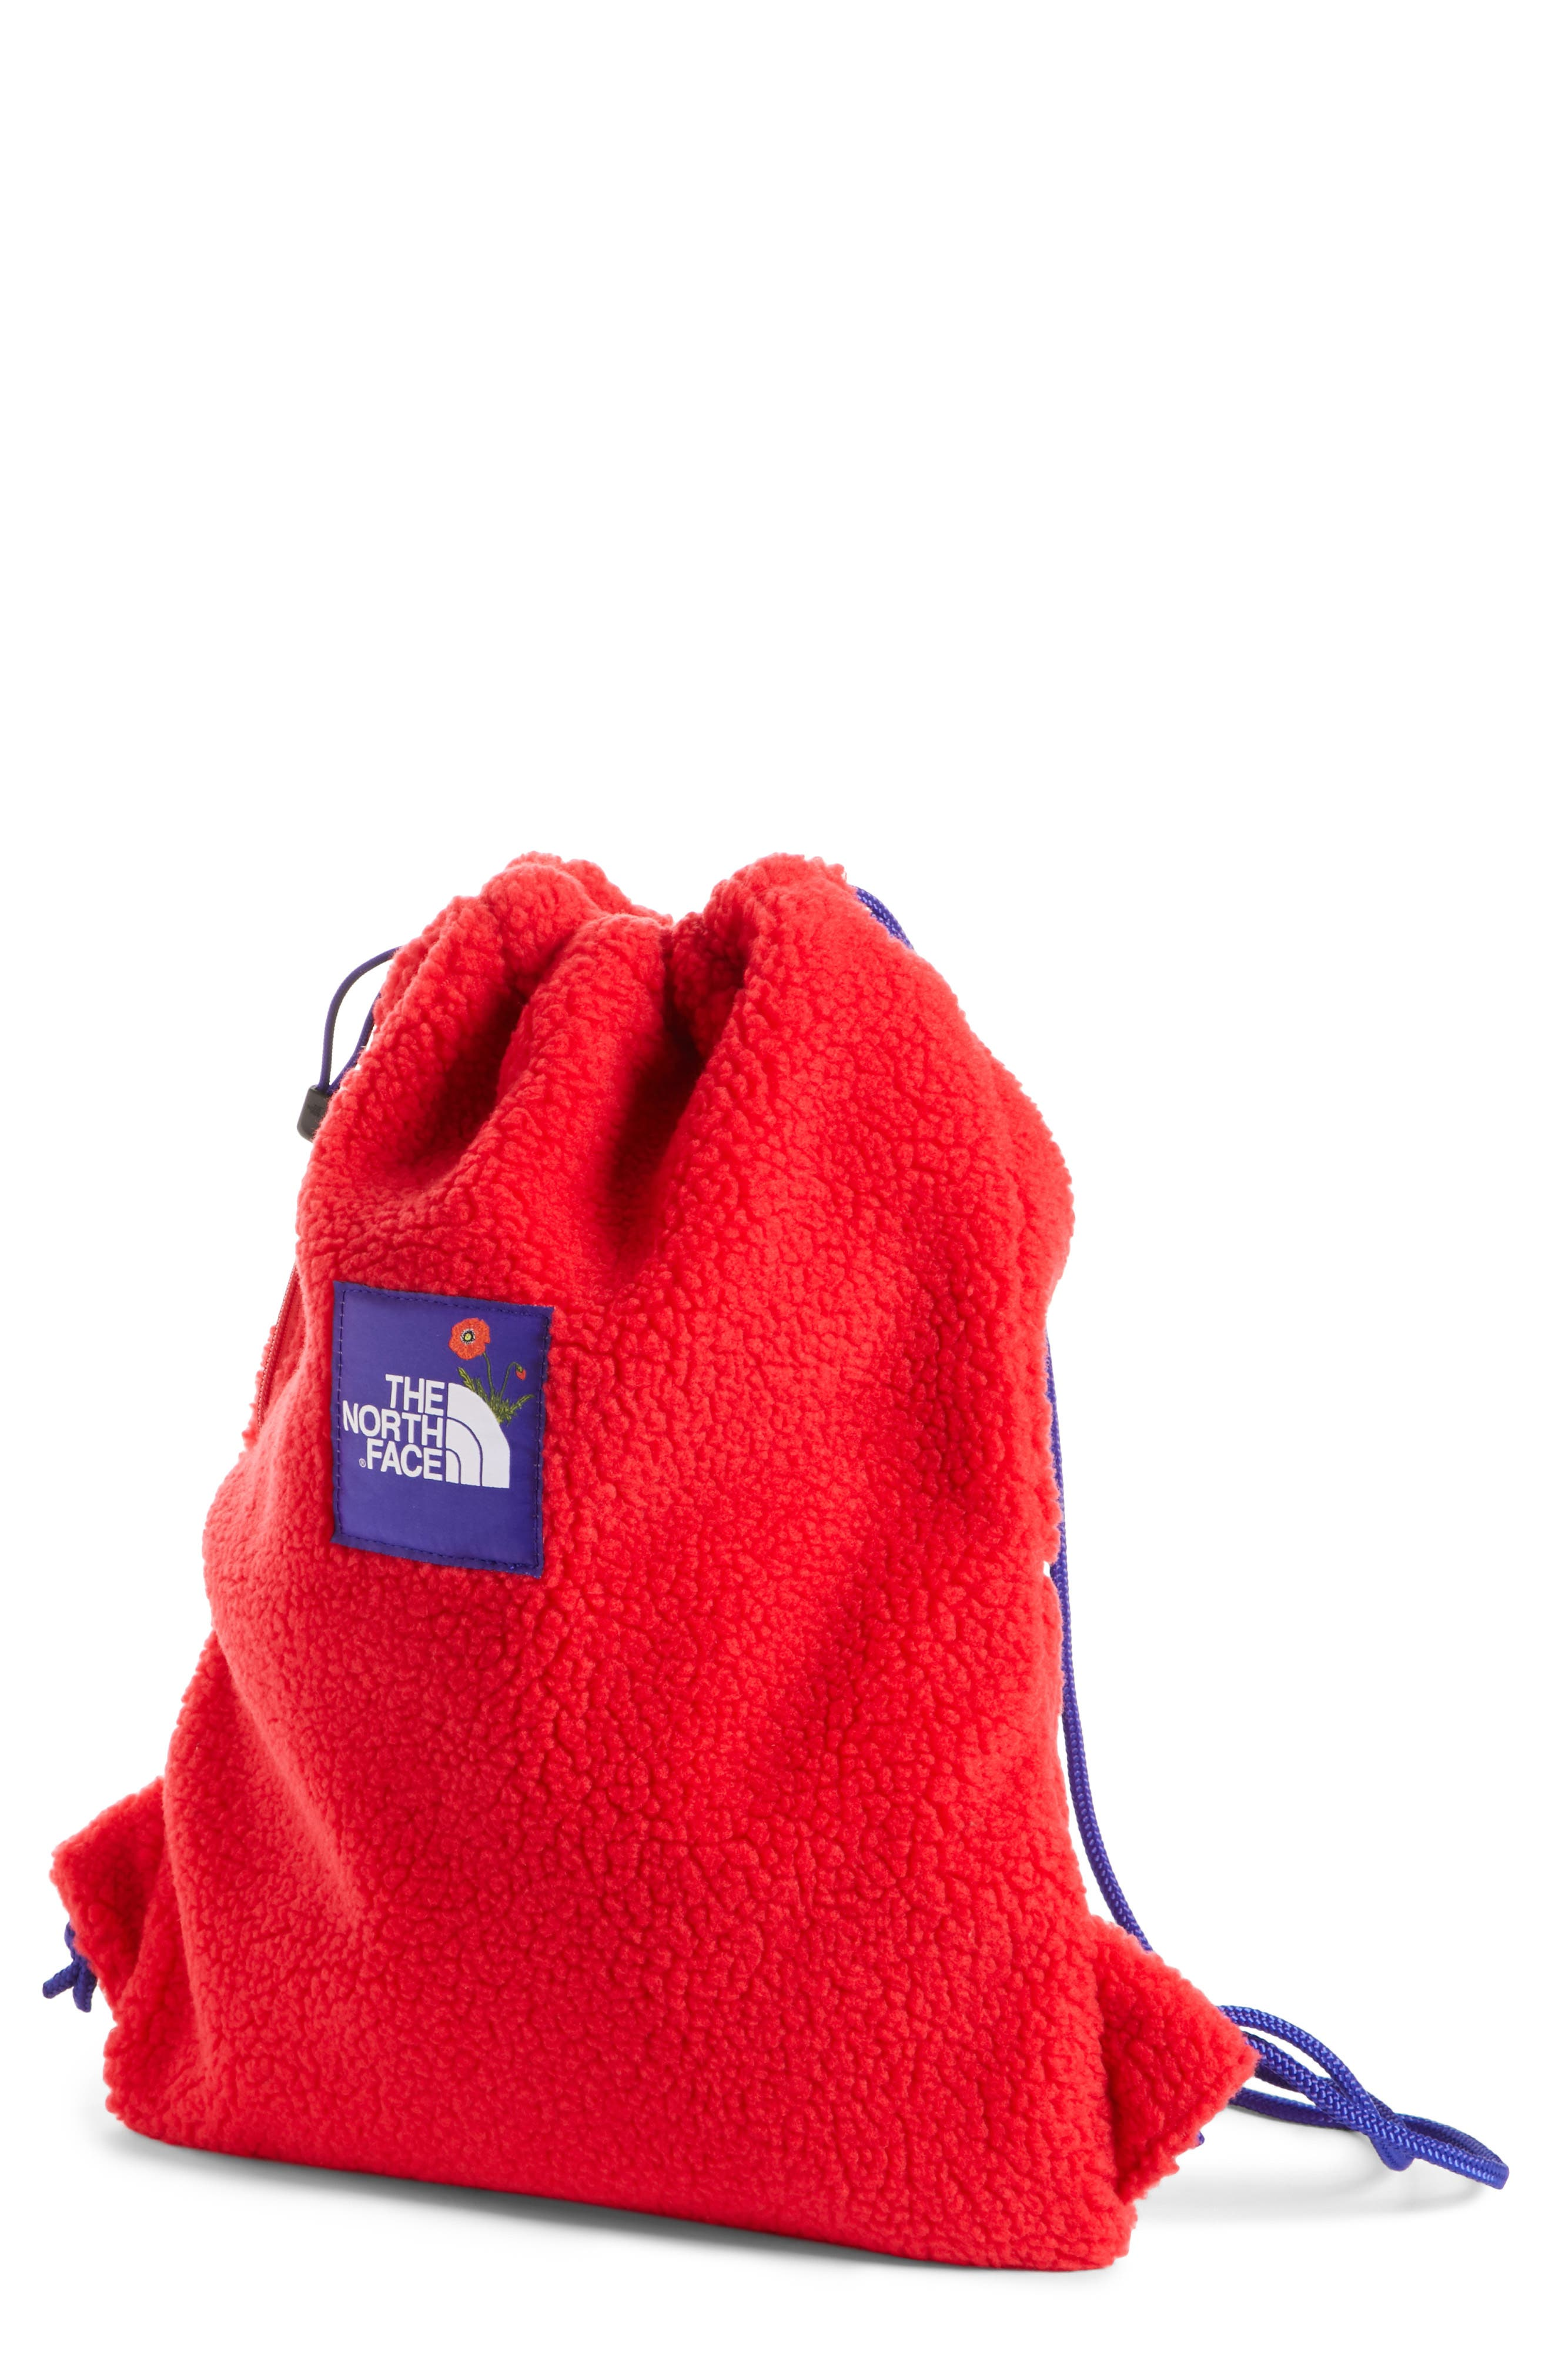 The North Face OK Fuzzy Sack Pack Drawstring Bag